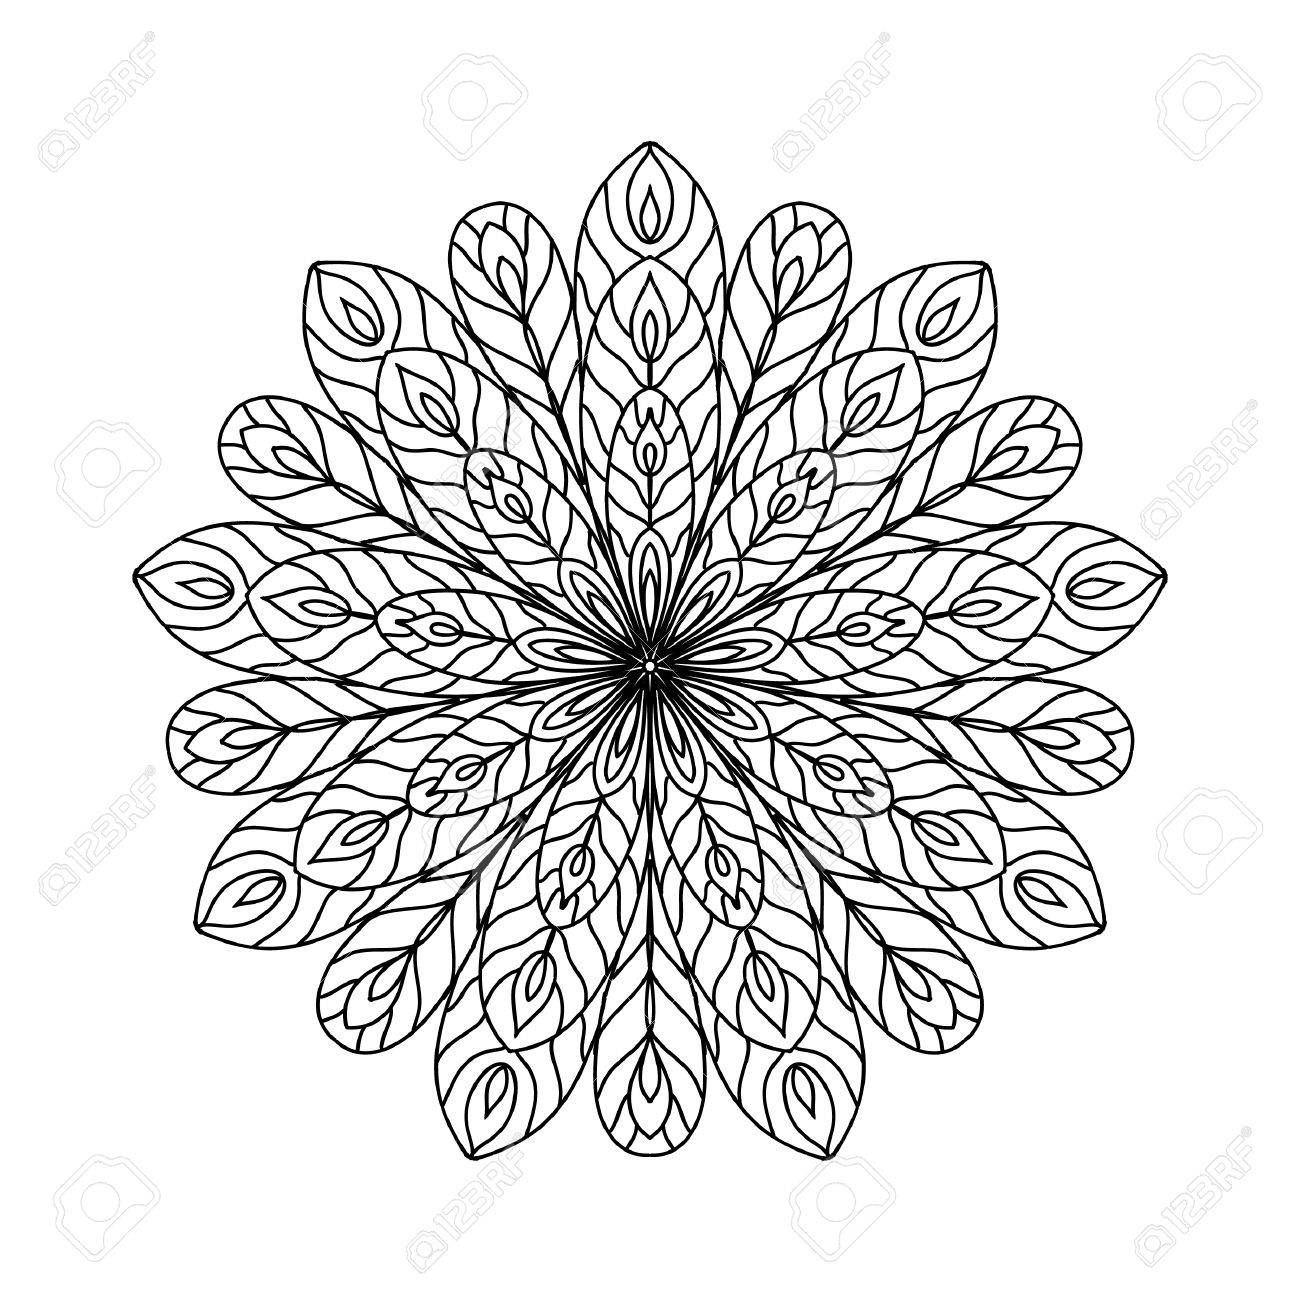 Abstract zentangle coloring page